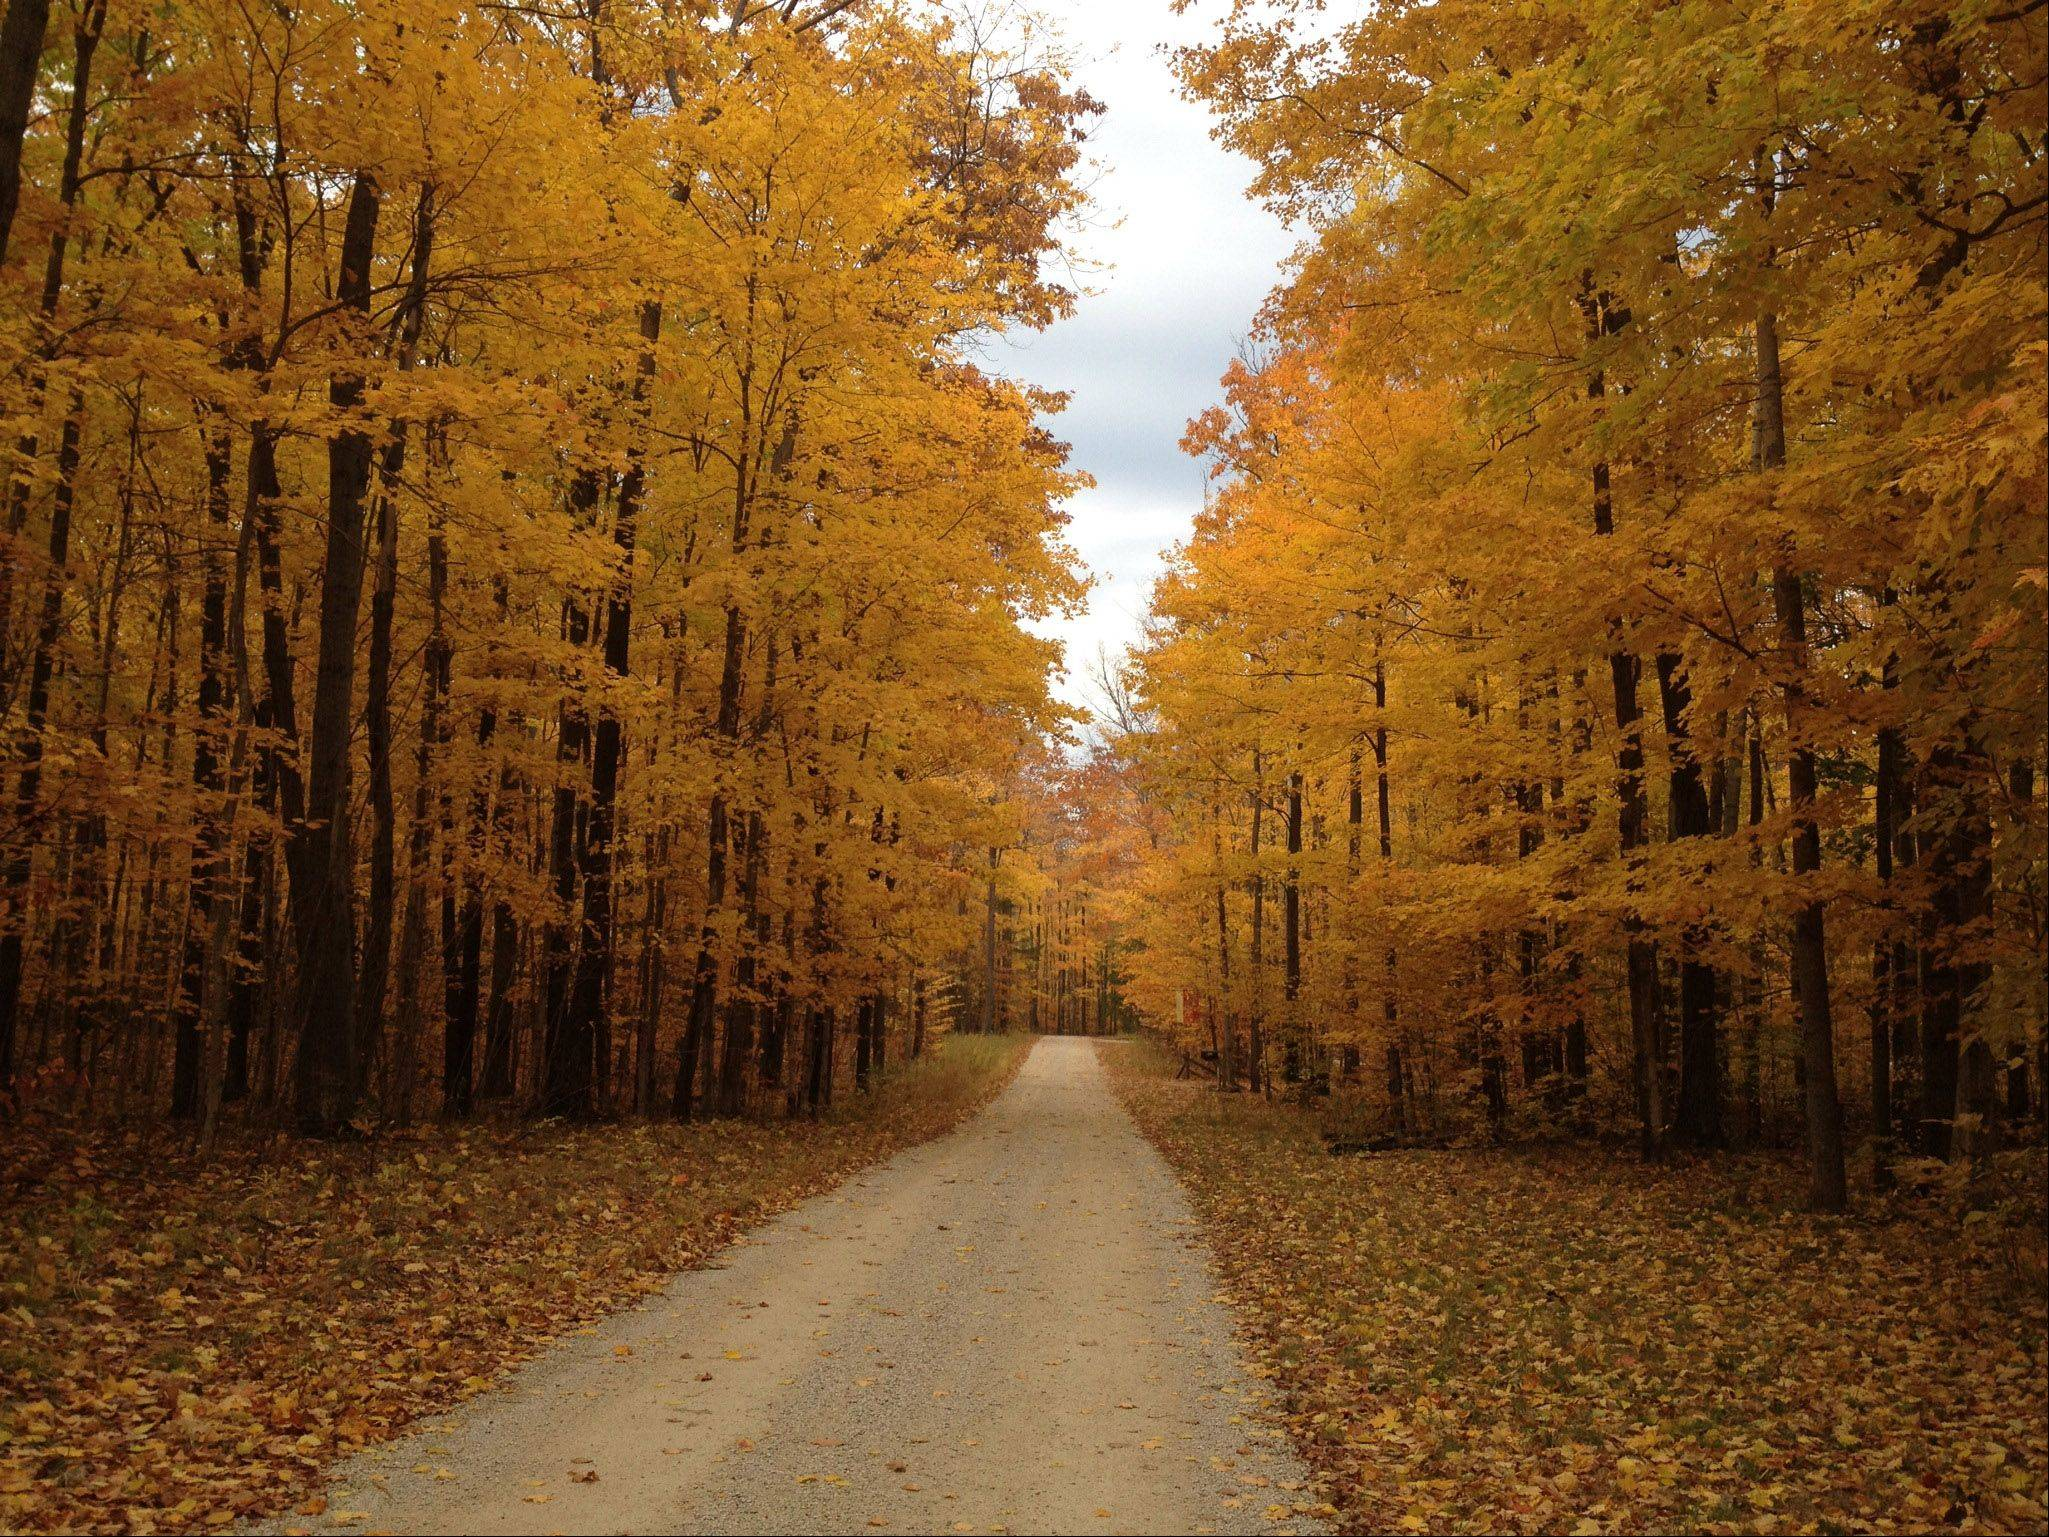 This fall picture of beech, maple, & birch trees in colors of orange, yellow, �& gold was taken on Birch Lane in Egg Harbor, WI.